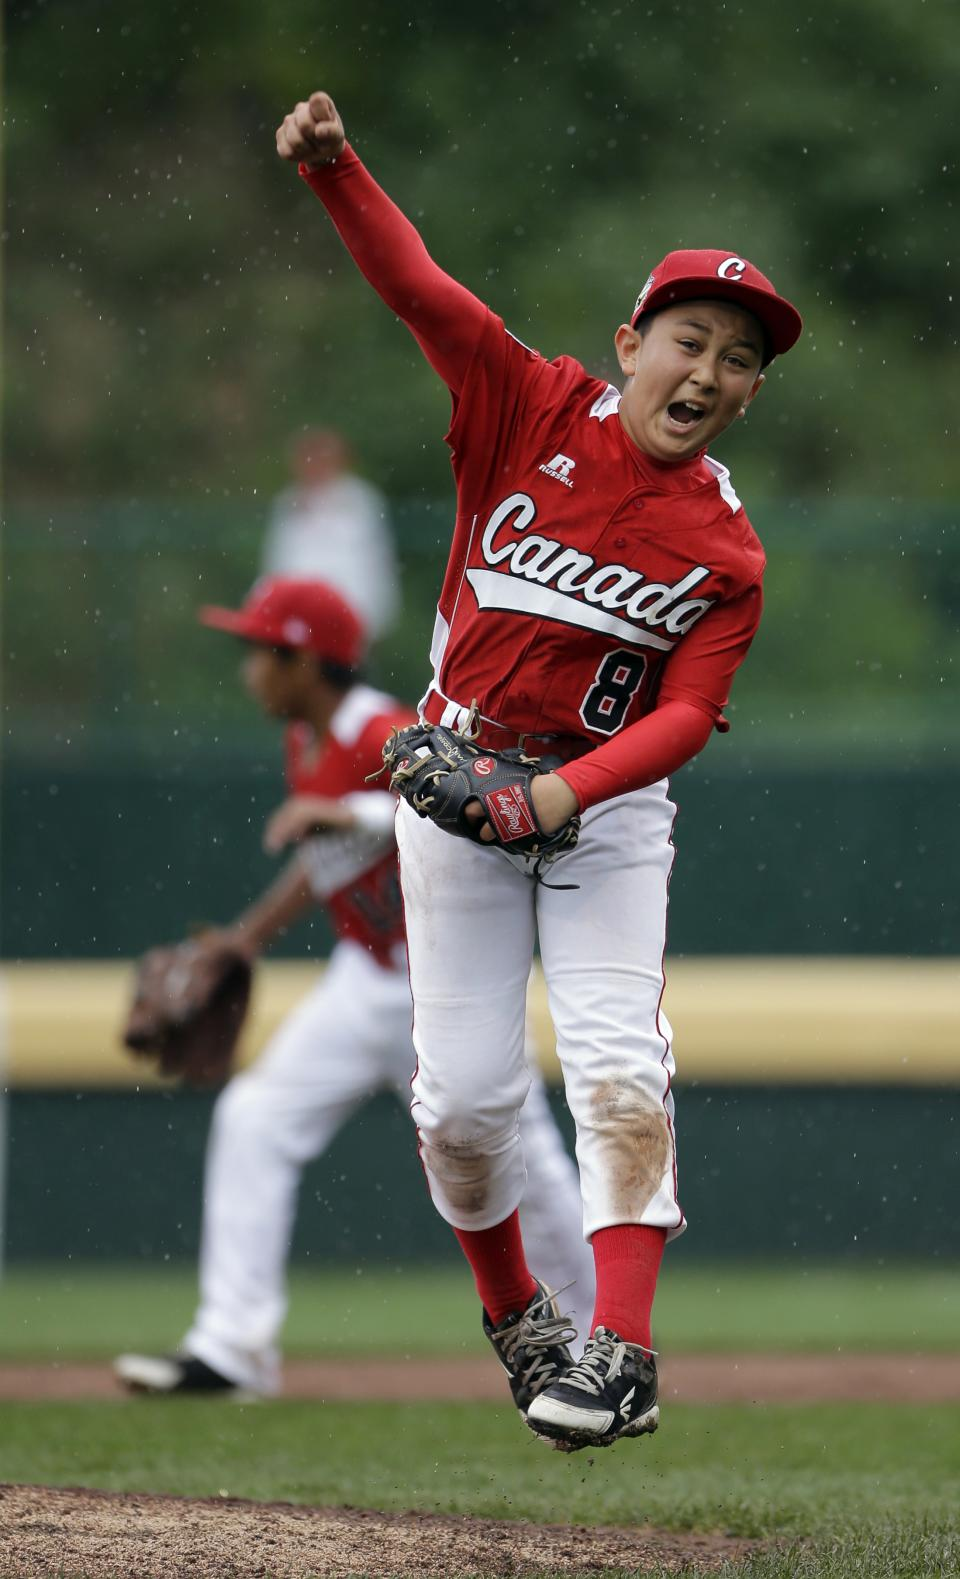 Vancouver, British Columbia's Ataru Yamaguchi reacts after getting Nuevo Laredo, Mexico's Marcelo Perez to fly out to end a pool play baseball game at the Little League World Series, Friday, Aug. 17, 2012, in South Williamsport, Pa. Canada won 13-9. (AP Photo/Matt Slocum)